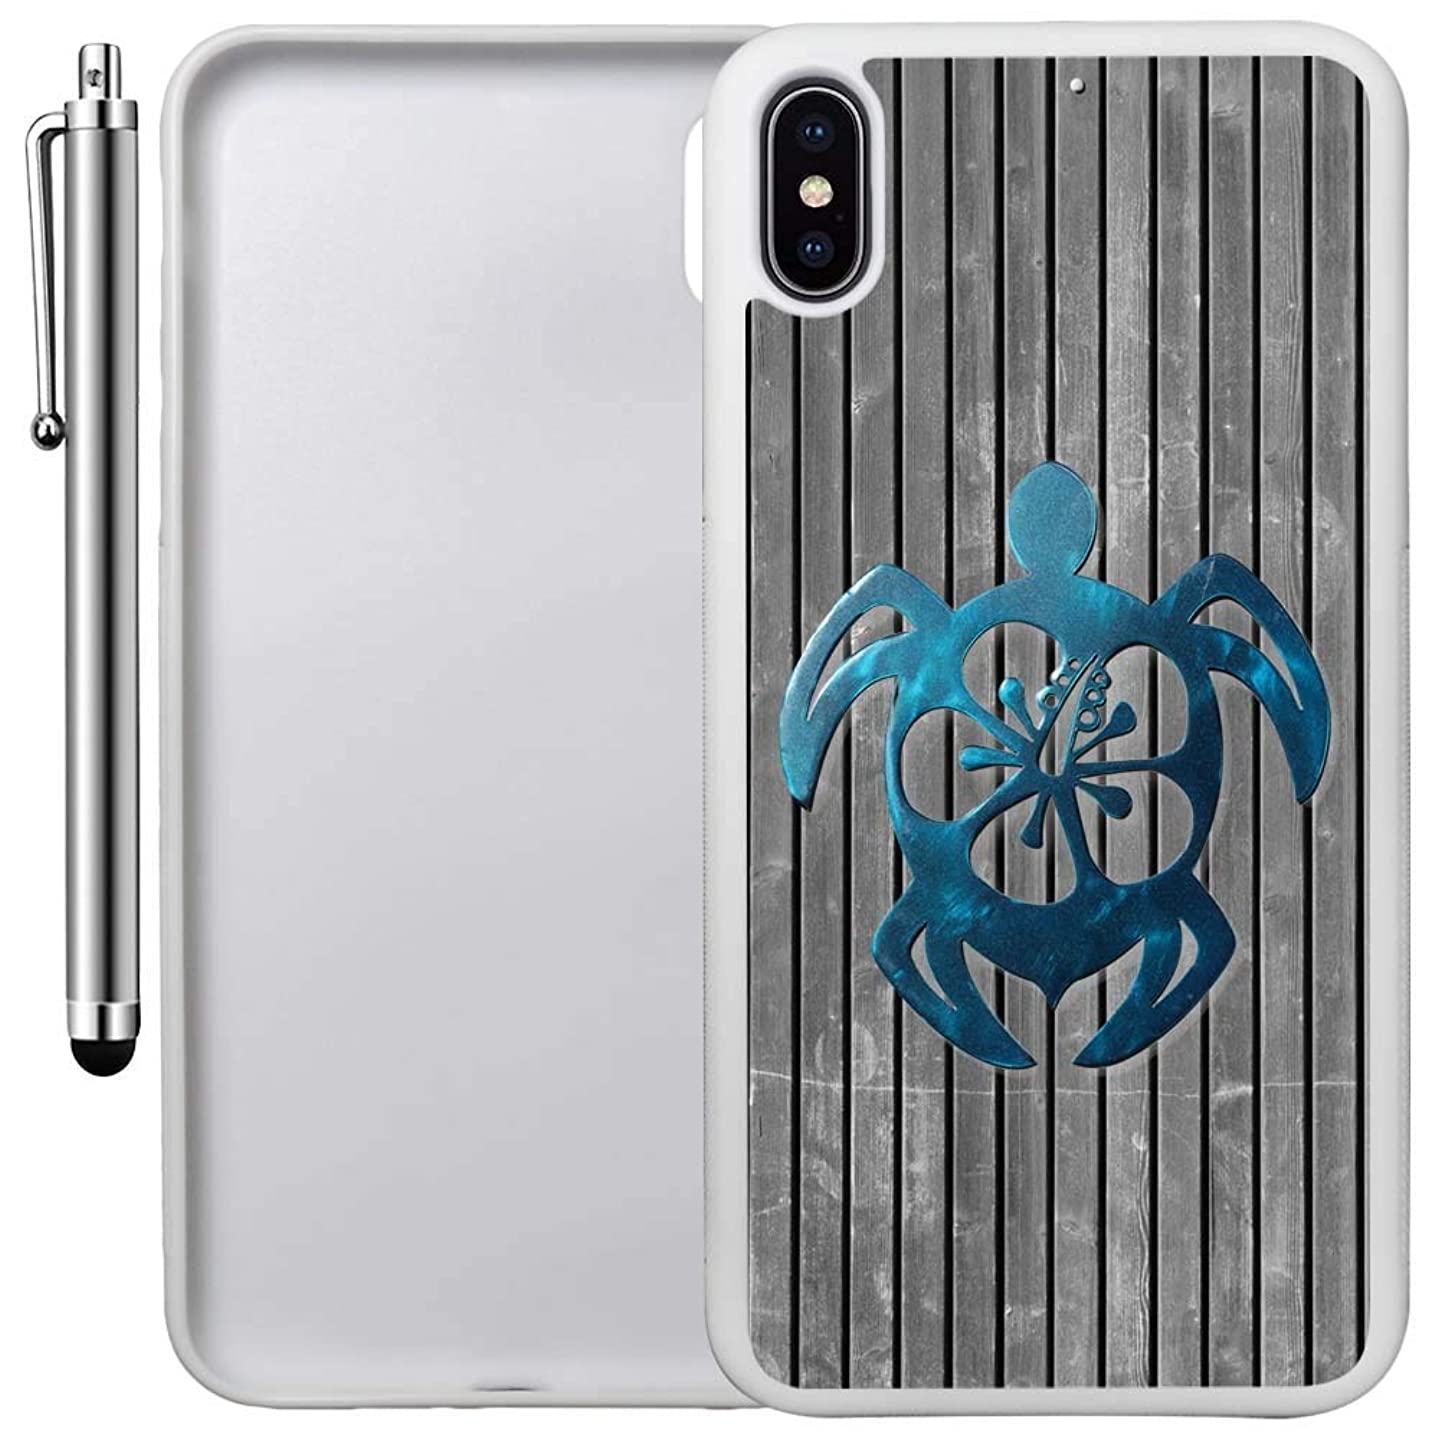 Custom Case Compatible with iPhone Xs MAX (6.5 inch) (Teal Hawaiian Turtle) Edge-to-Edge Rubber White Cover Ultra Slim   Lightweight   Includes Stylus Pen by Innosub